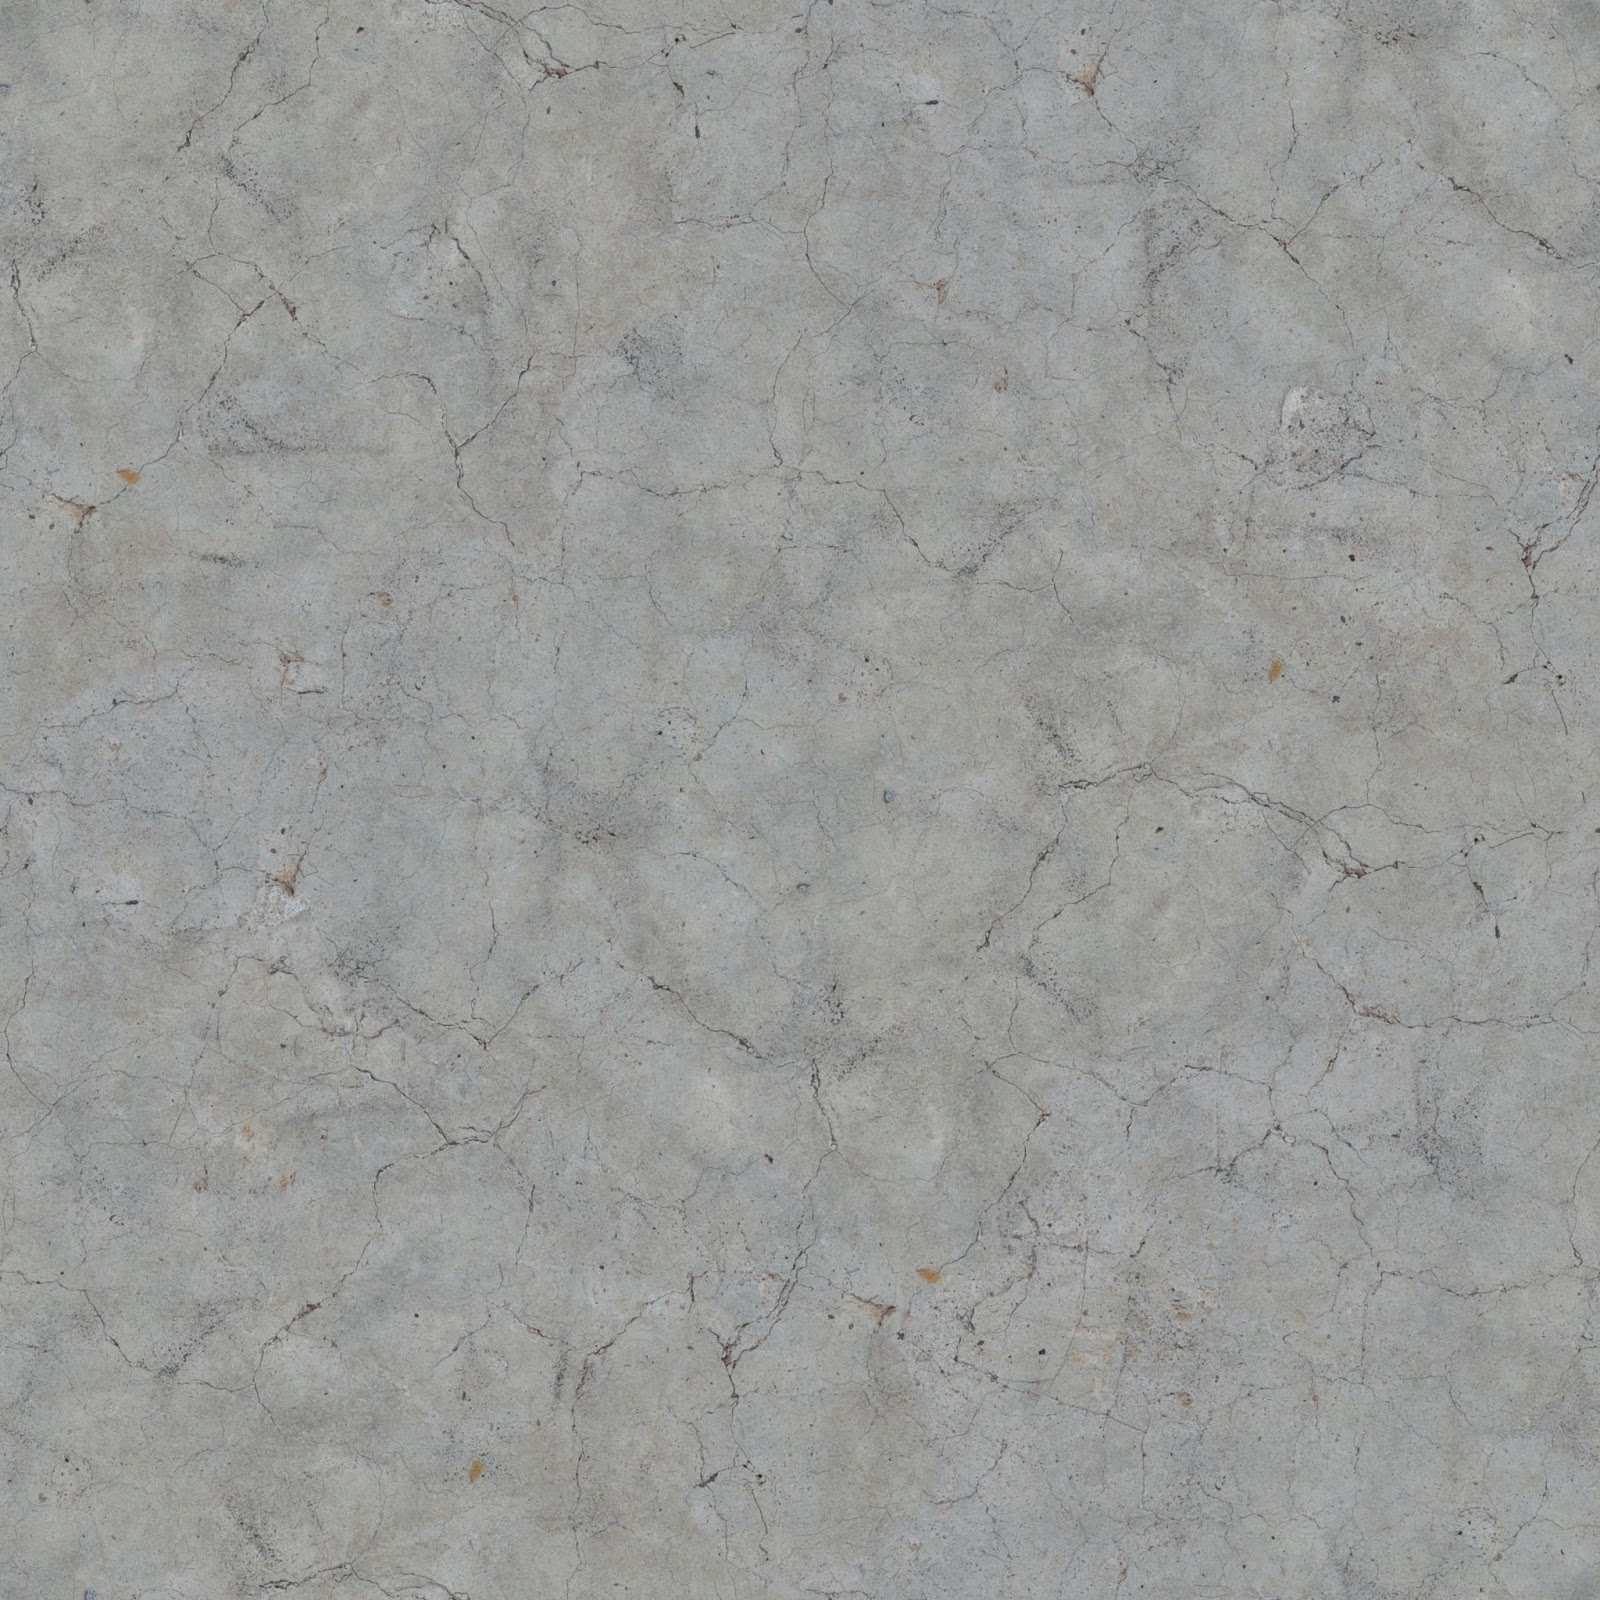 High Resolution Seamless Textures Concrete That Is